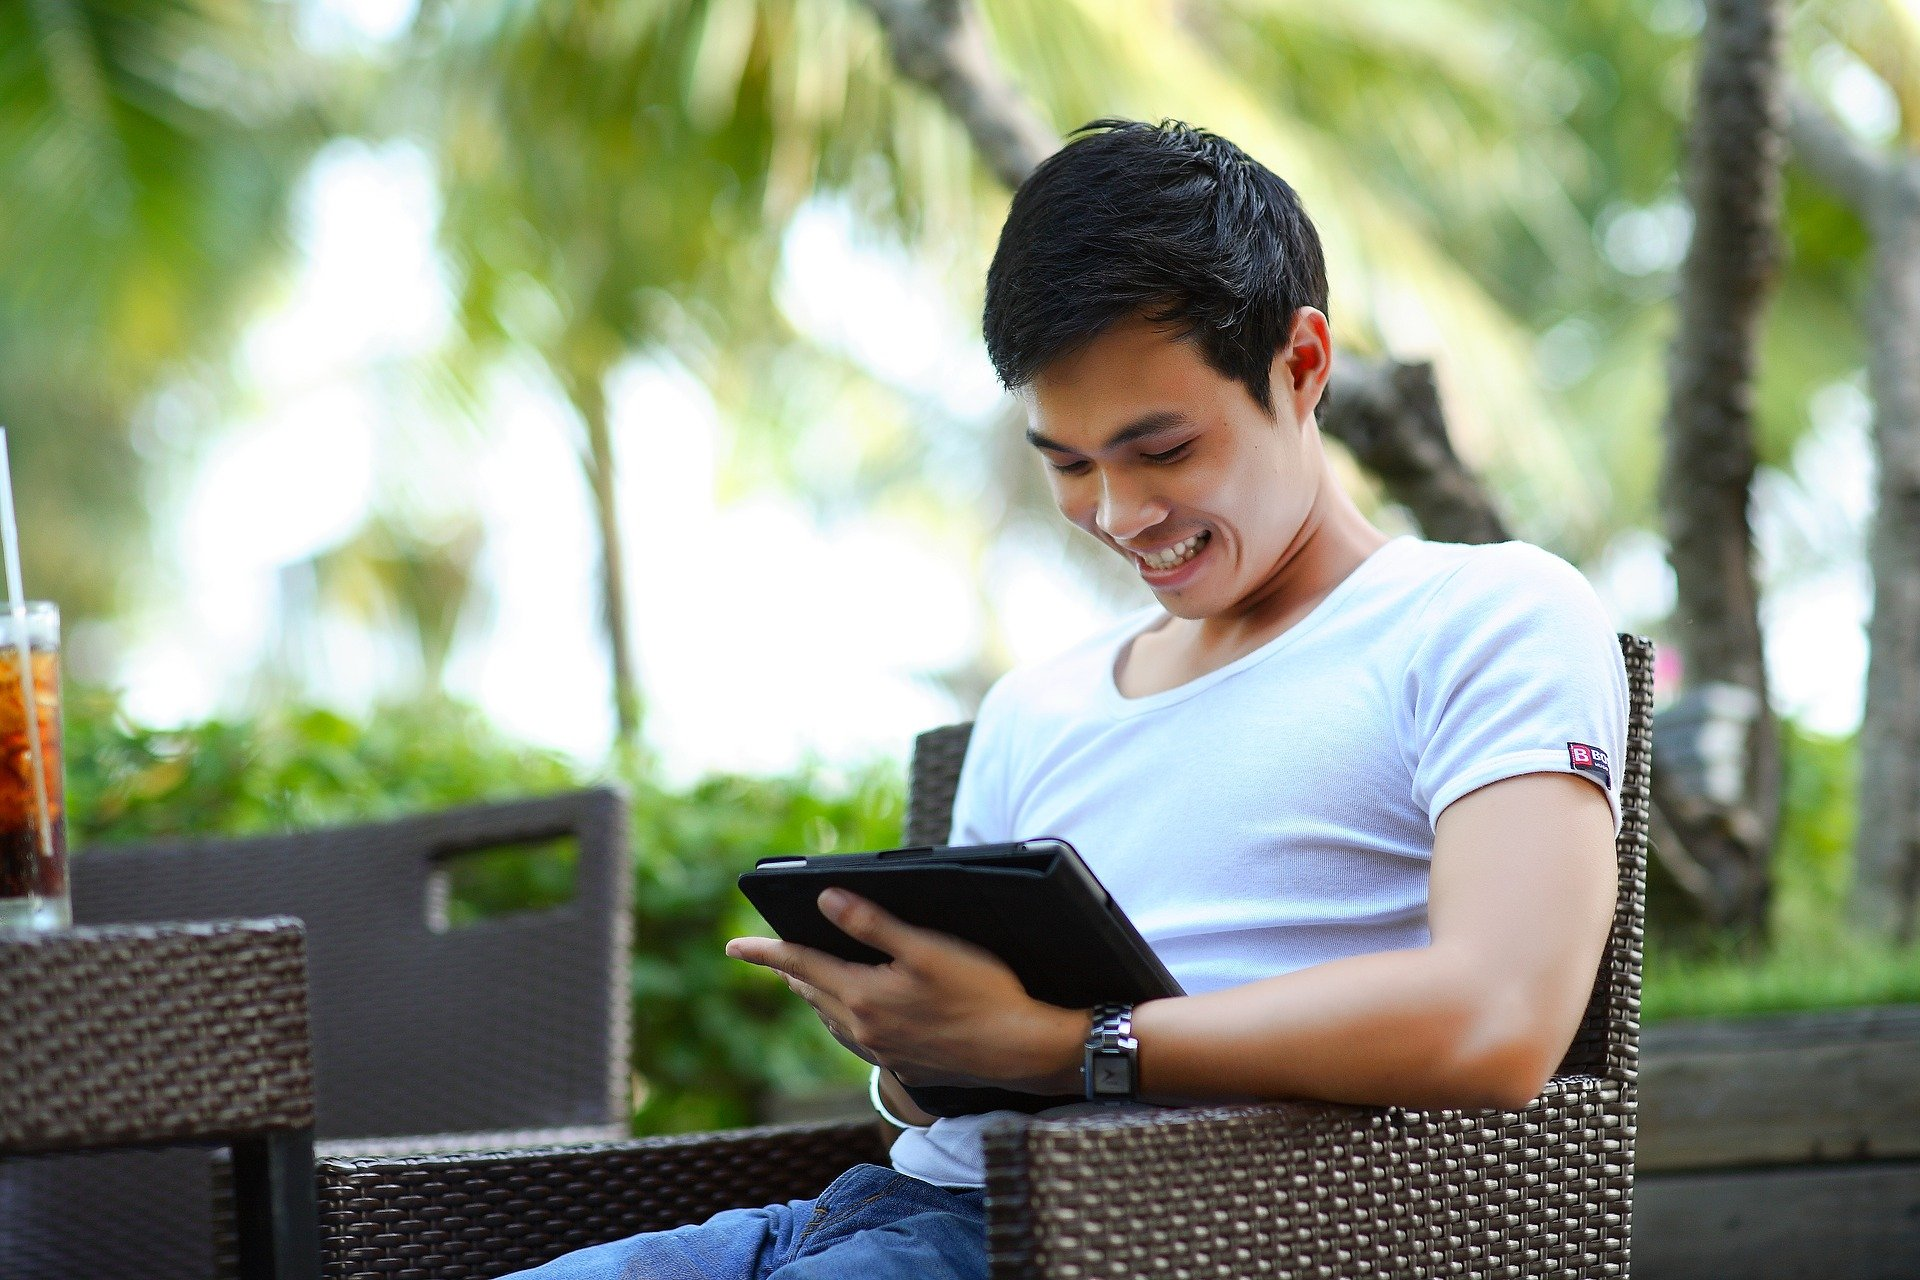 Man sitting on outside deck chair smiling and tapping on iPad.